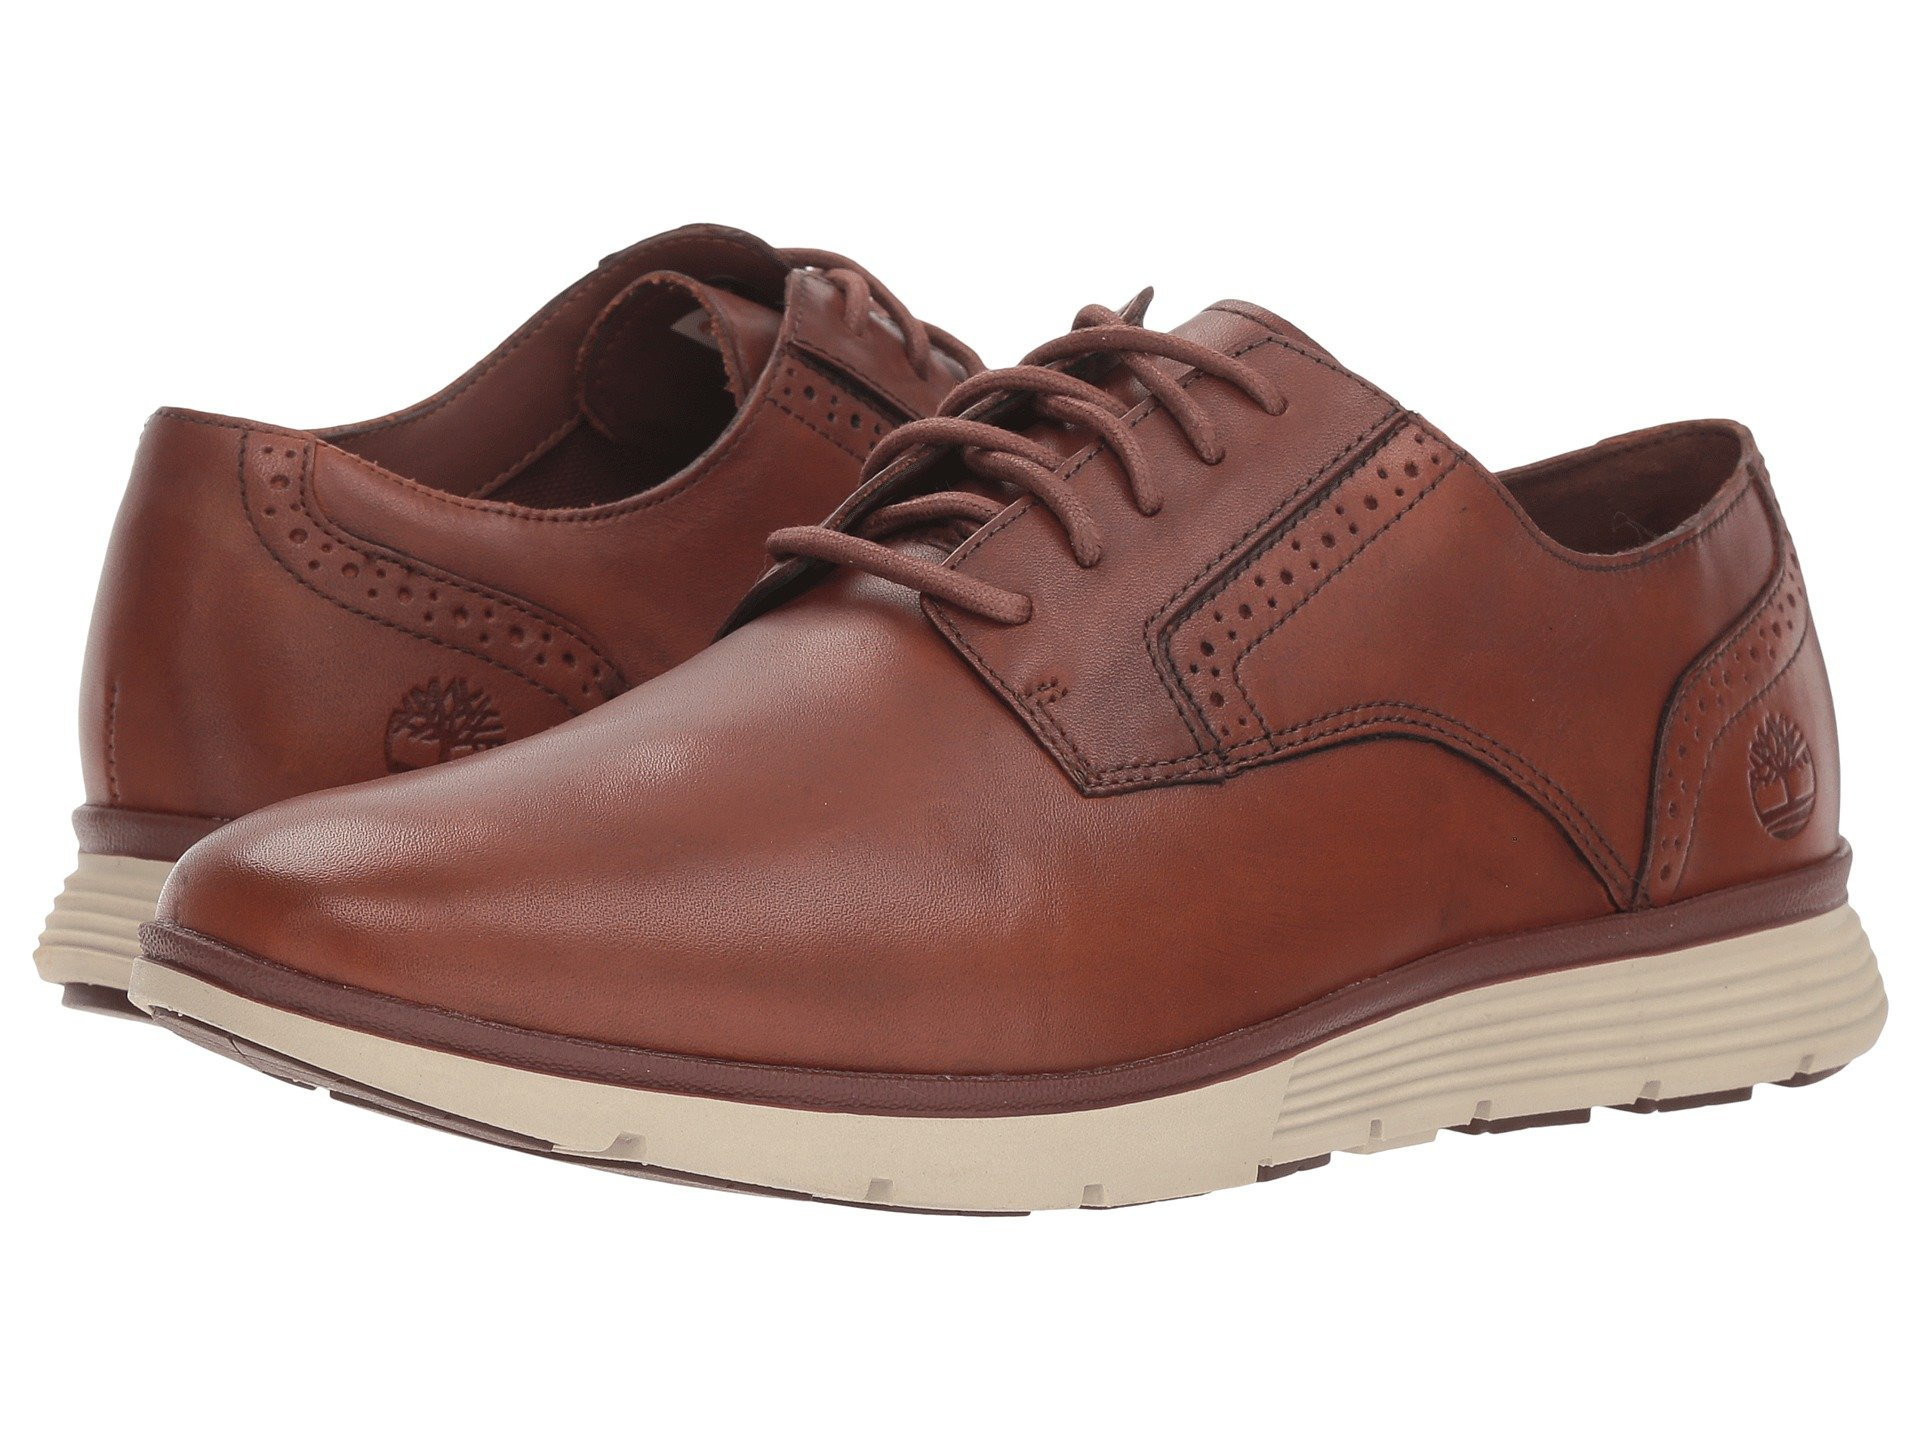 Zapato Casual para Mujer Timberland Franklin PRK PT Brogue OX  + Timberland en VeoyCompro.net